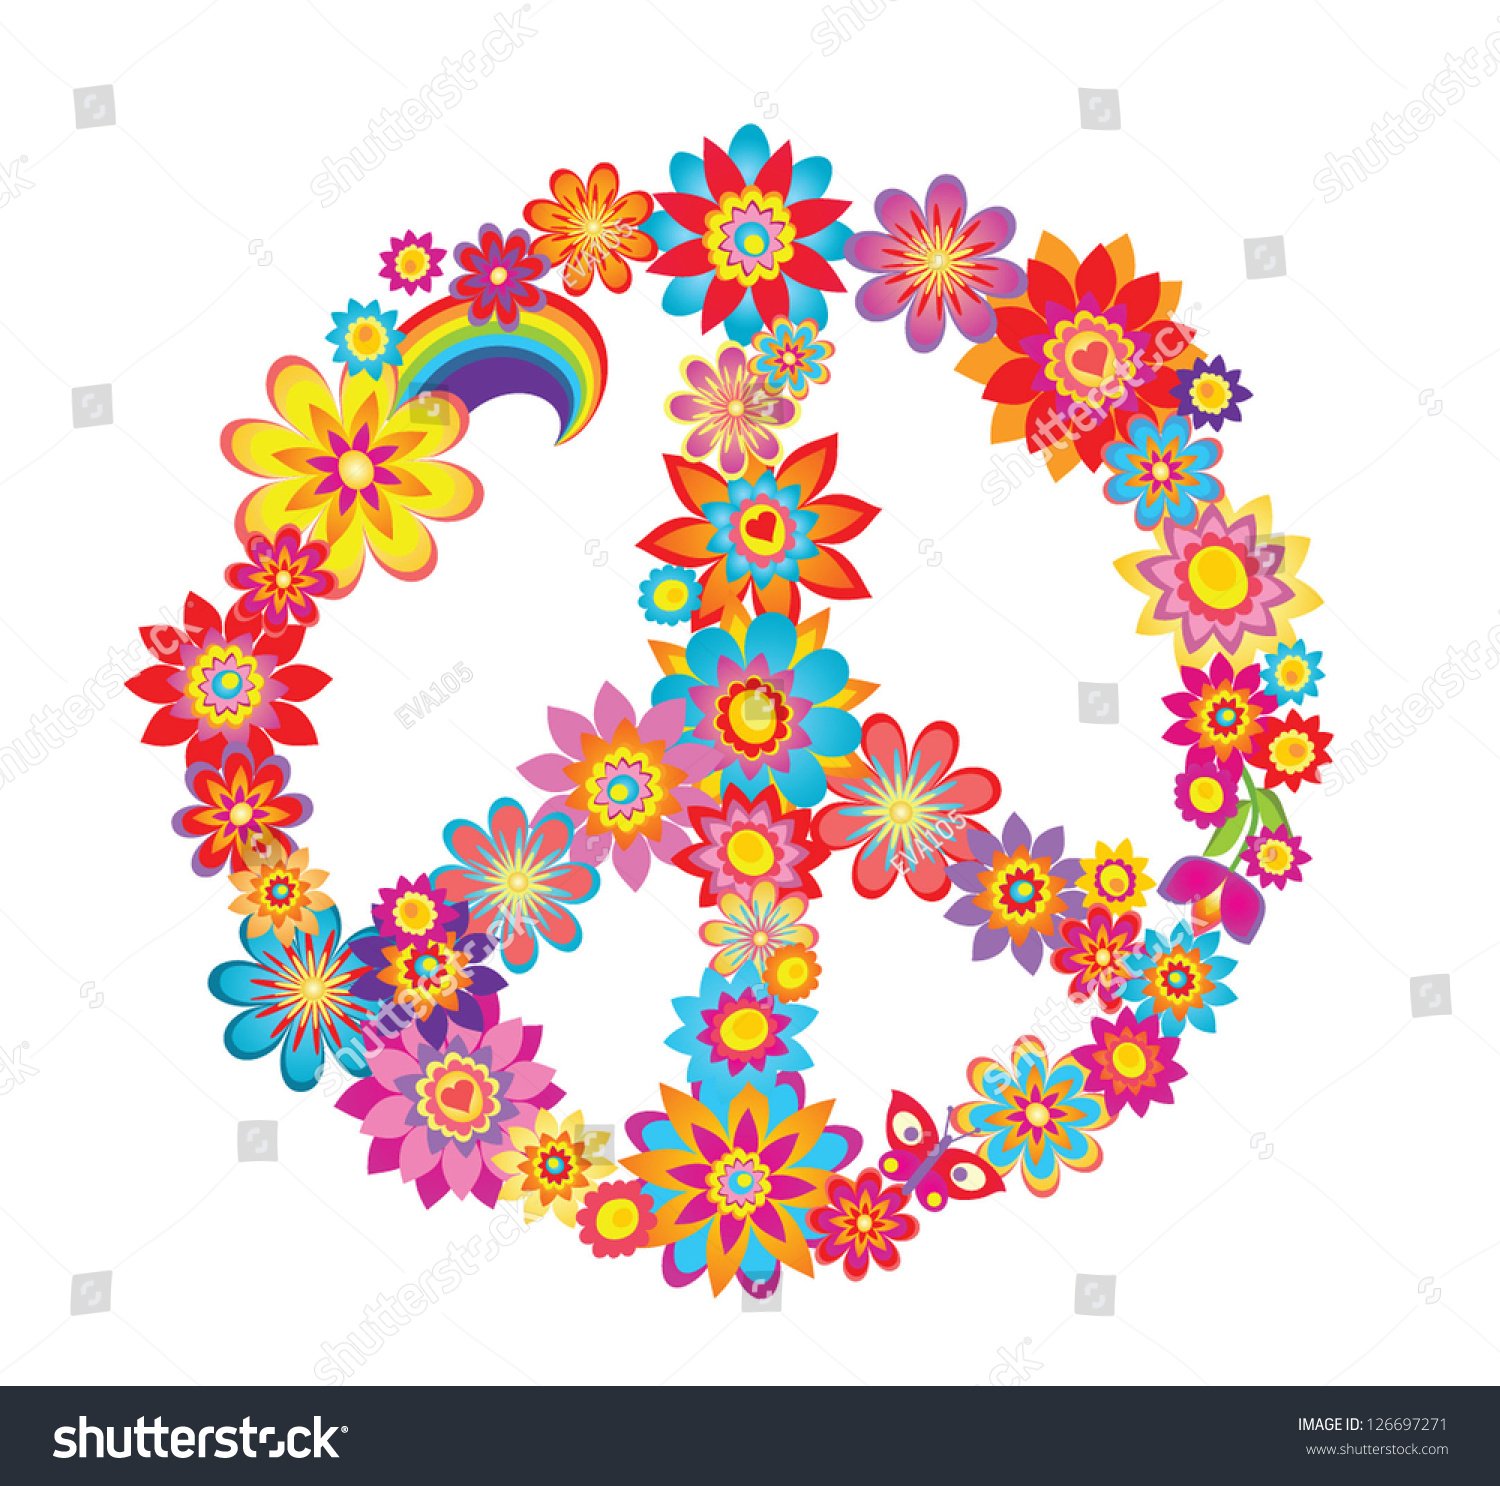 Colorful Peace Flower Symbol Stock Vector Shutterstock